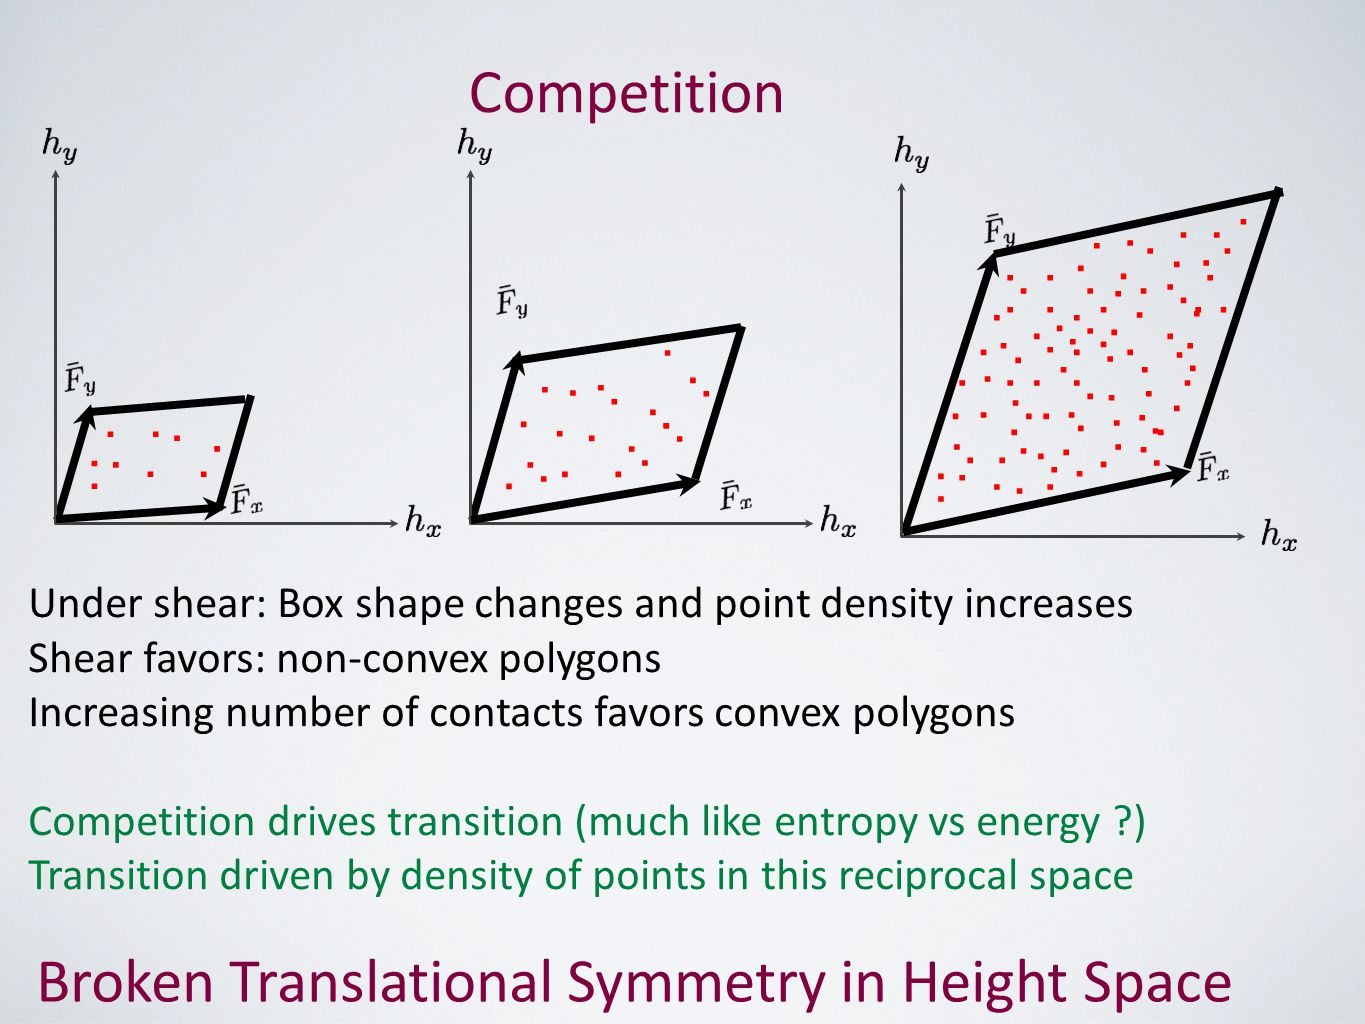 Broken Translational Symmetry in Height Space